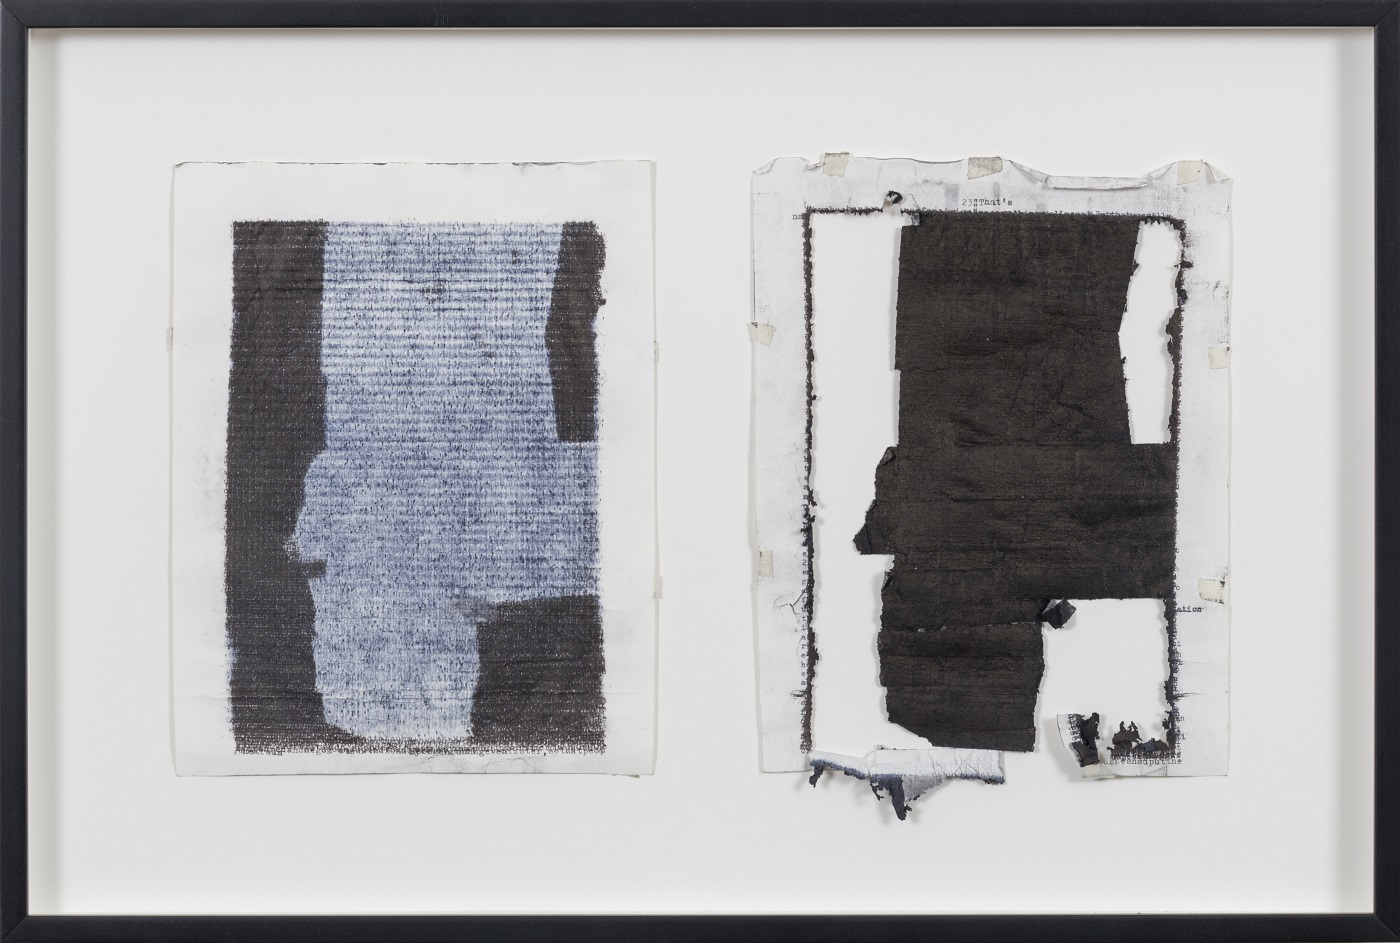 Tim Youd, Kingsley Amis' Lucky Jim, 2015. typewriter ink on paper. framed 17 x 25 inches (43.2 x 63.5 cm). Courtesy the artist and Cristin Tierney Gallery, New York